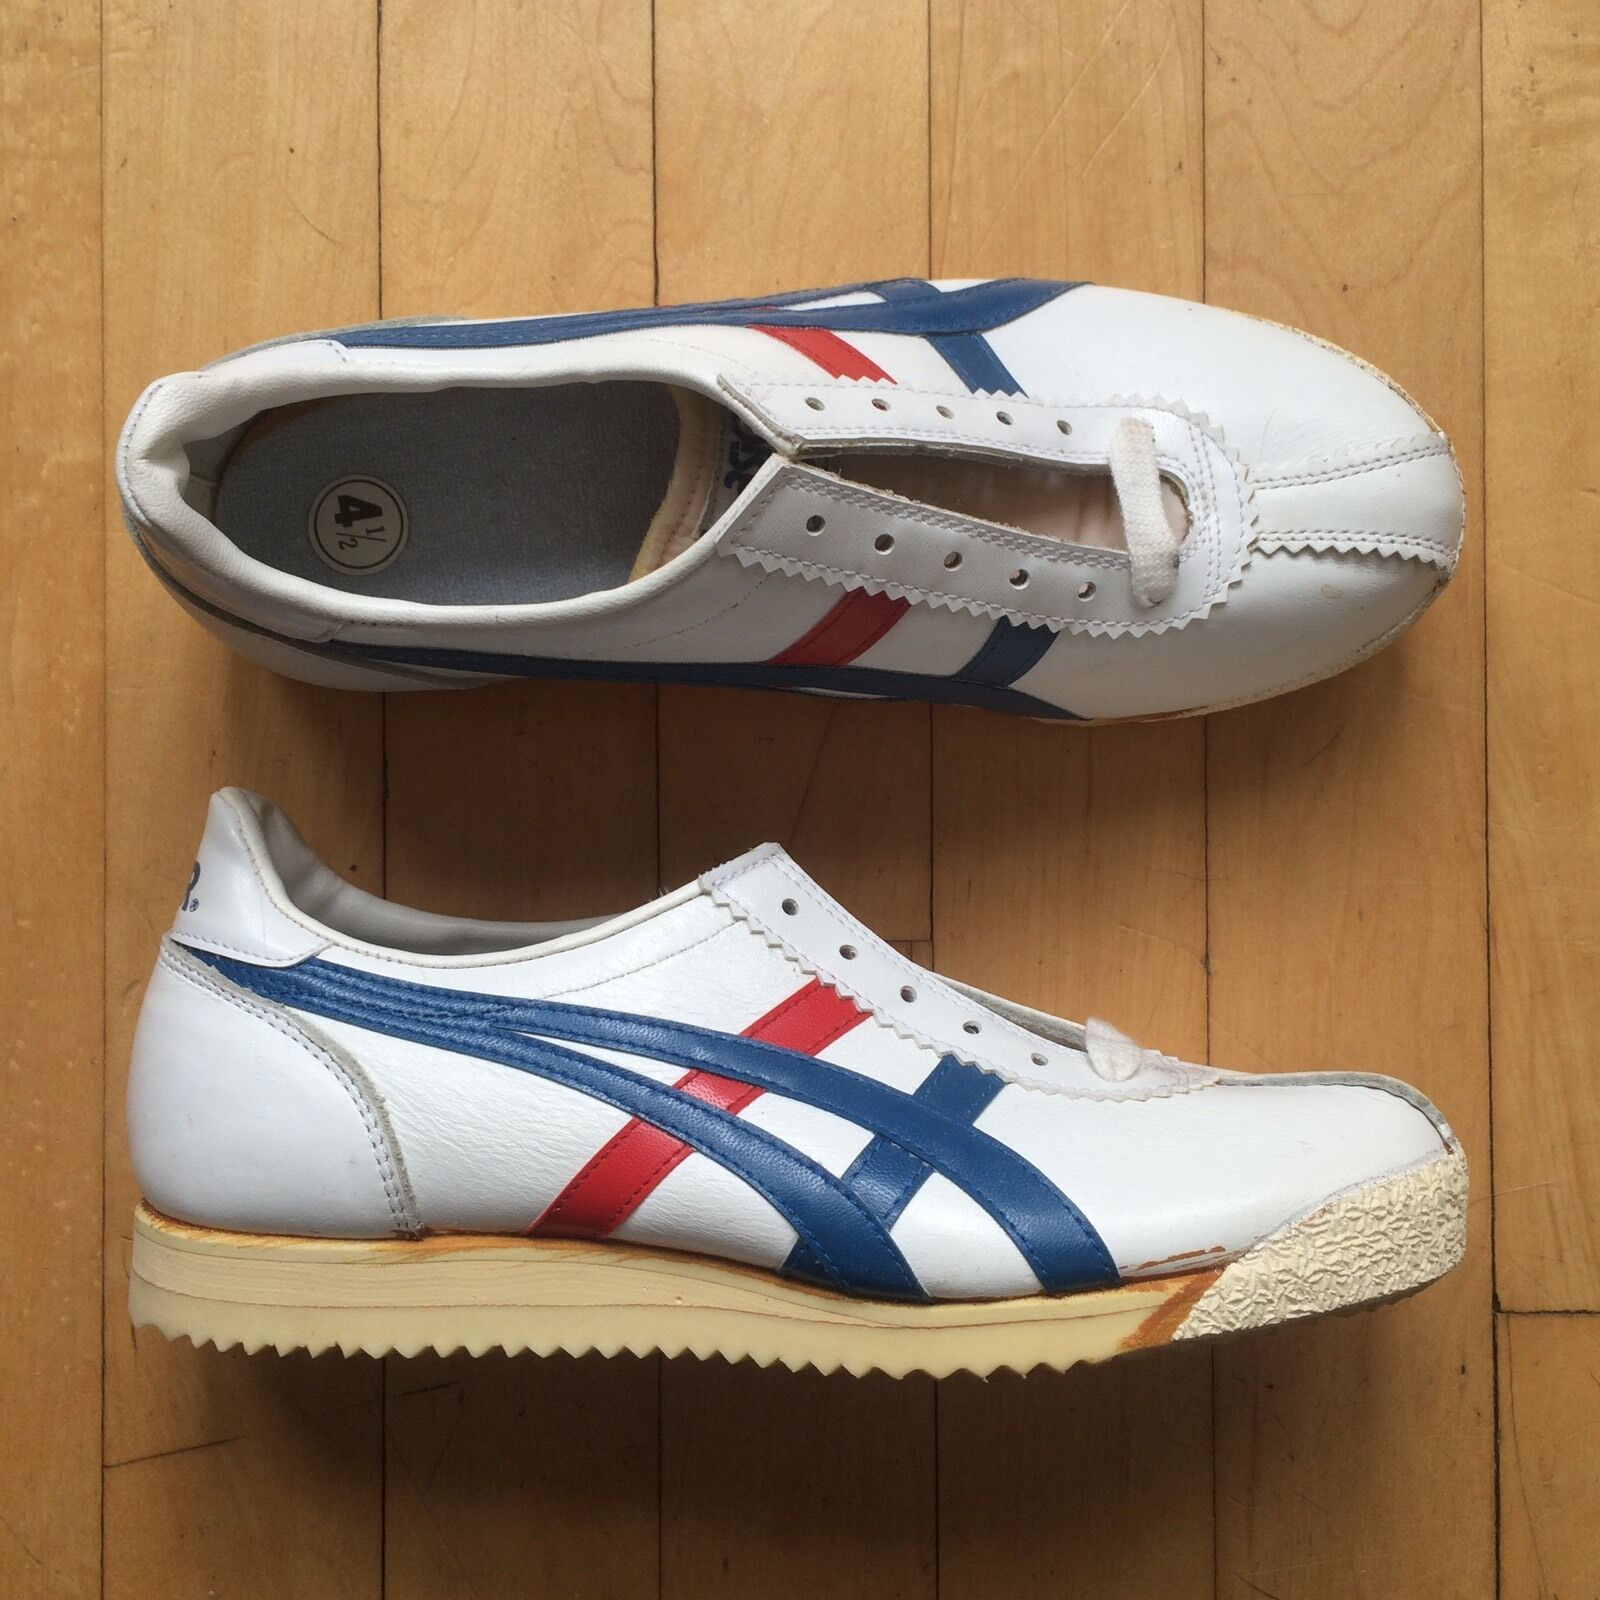 70s NOS Asics Onitsuka Tiger Original Vintage Rare OG Sz 4.5 6 Made In Japan The latest discount shoes for men and women